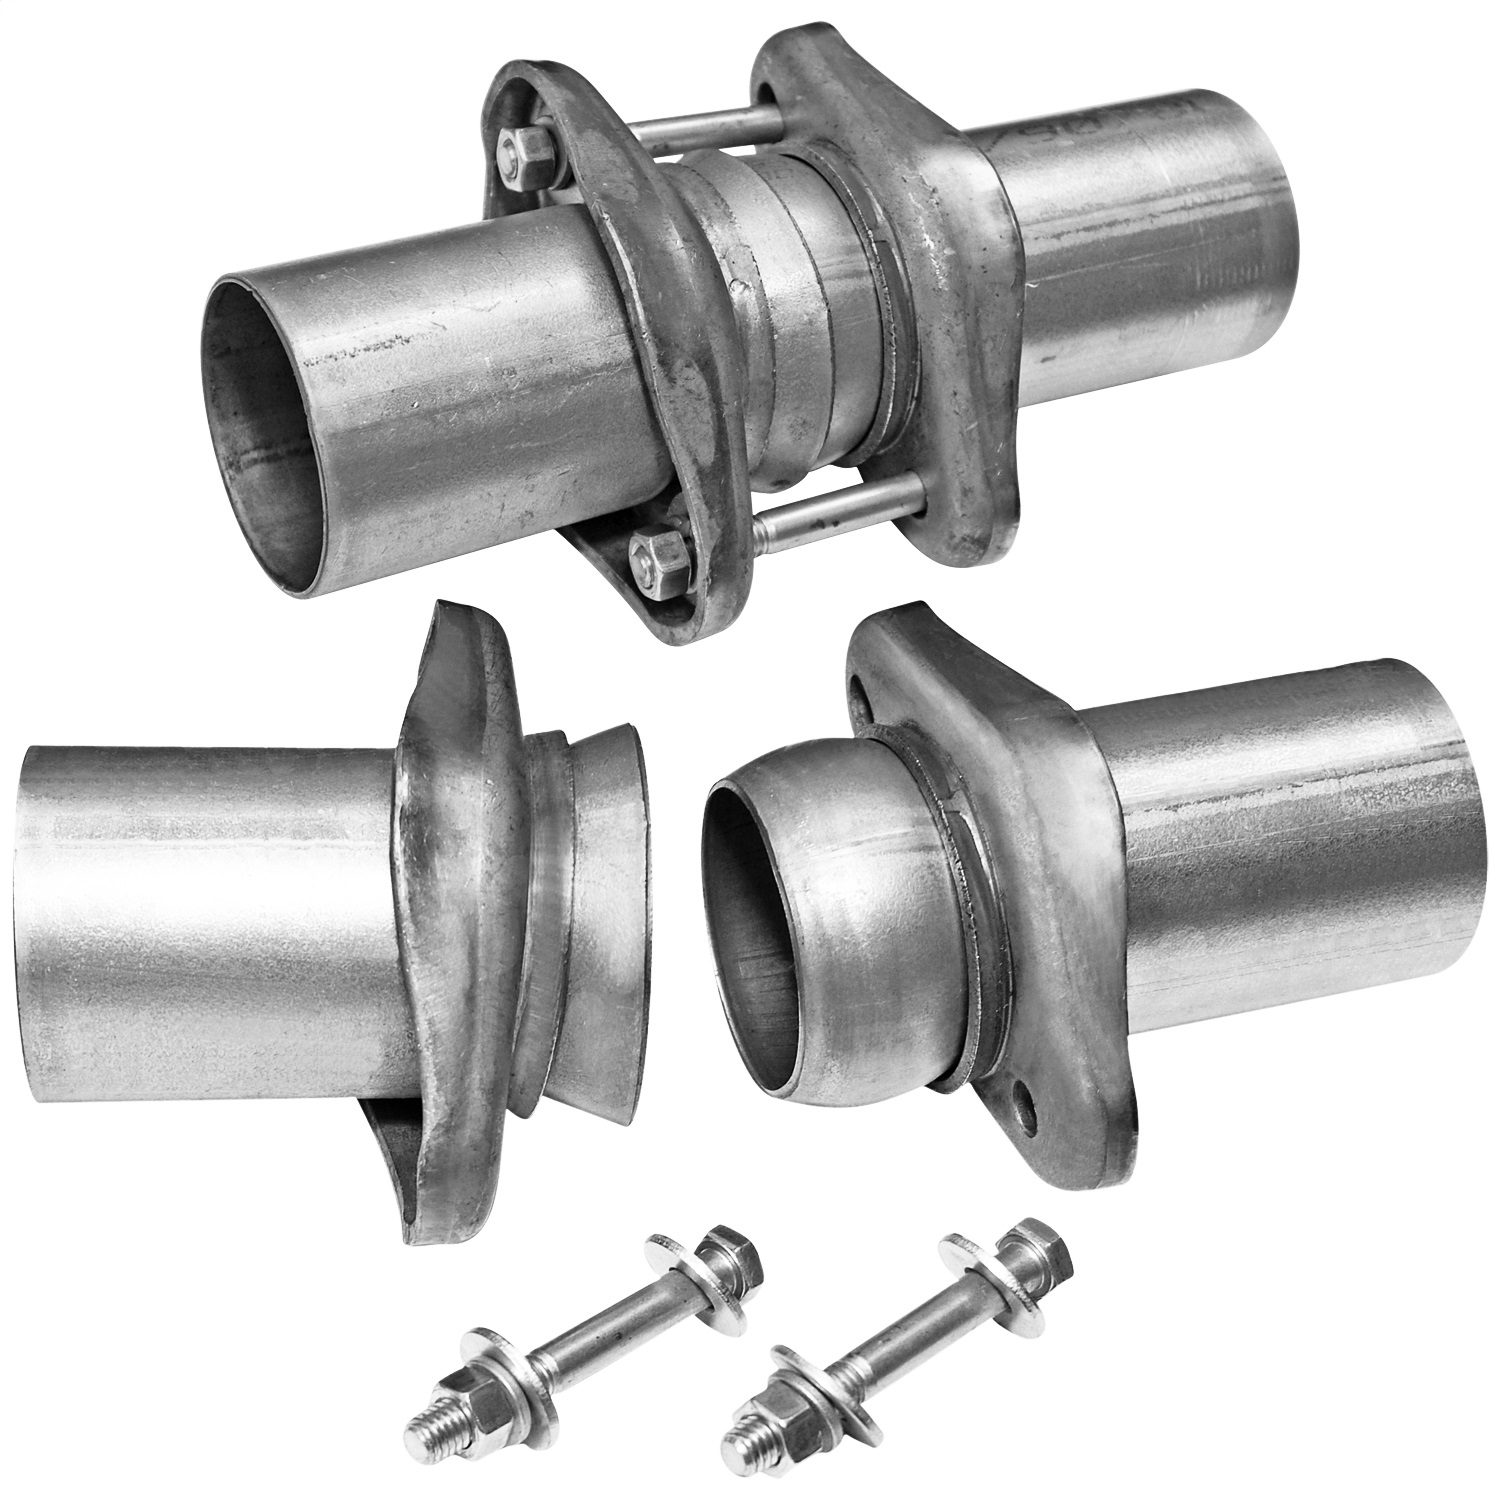 Flowmaster 15930 Header Collector Ball Flange Kit